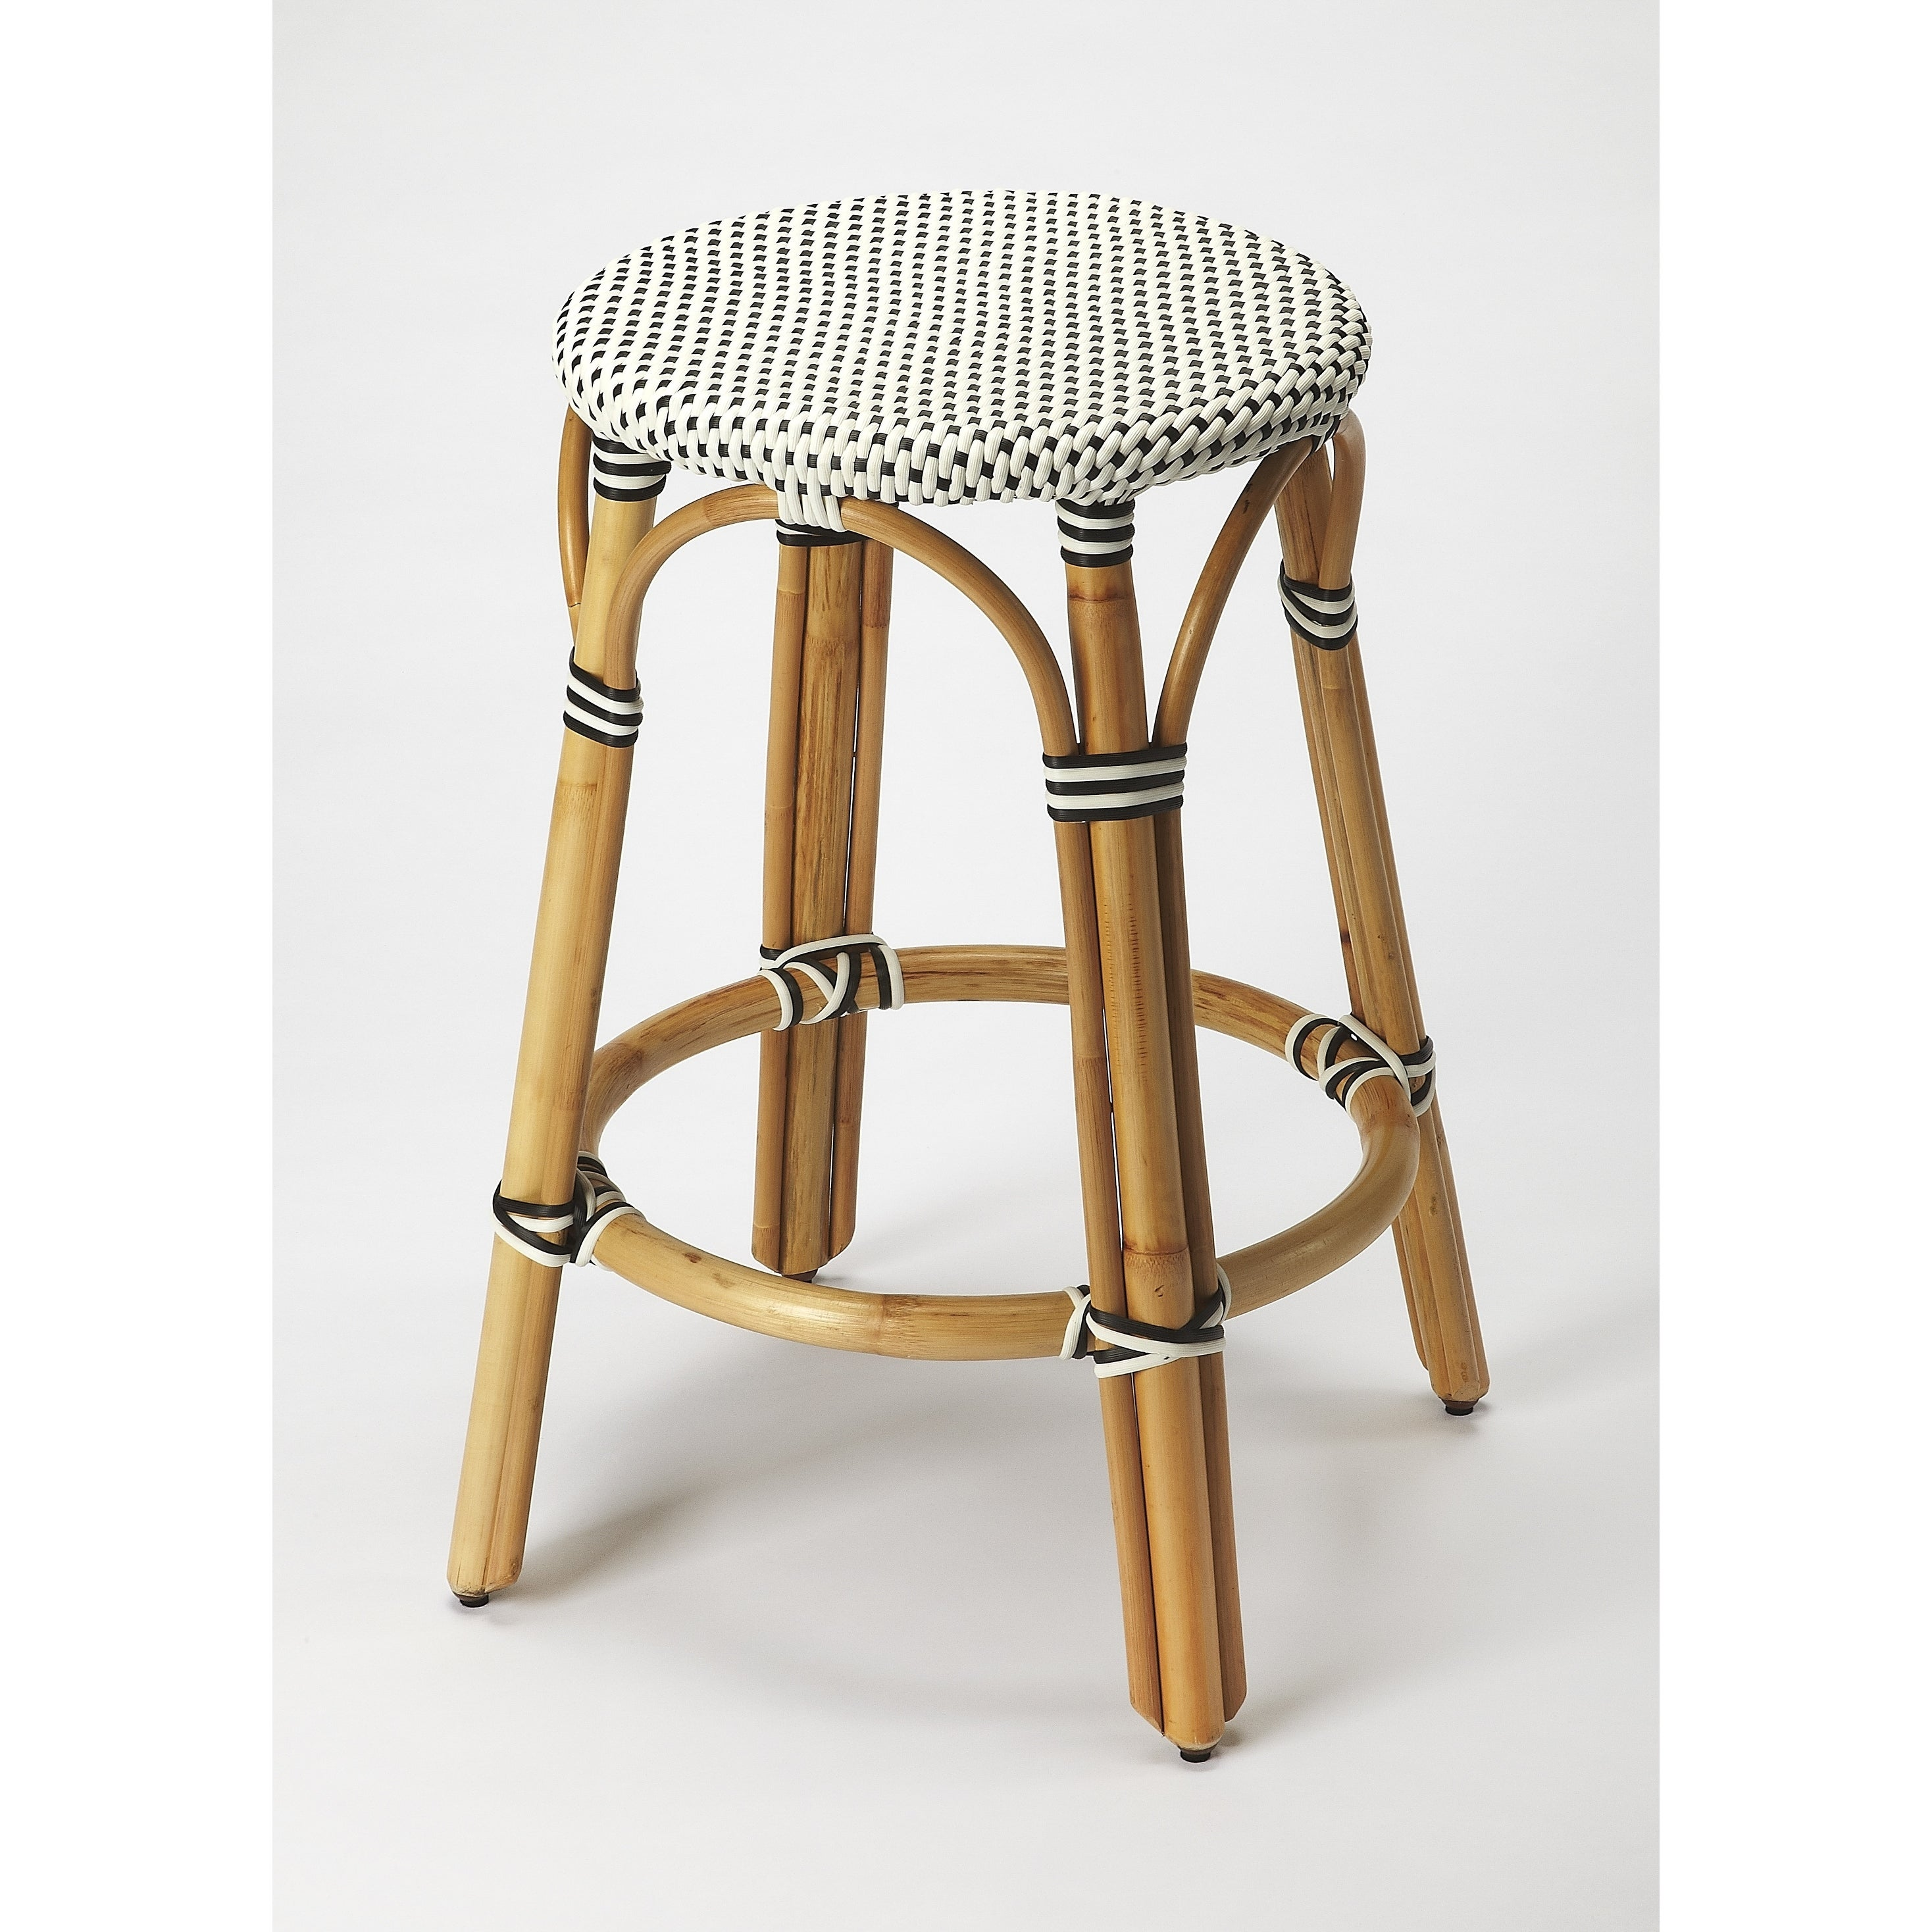 Astounding Buy Rattan Counter Bar Stools Online At Overstock Our Evergreenethics Interior Chair Design Evergreenethicsorg